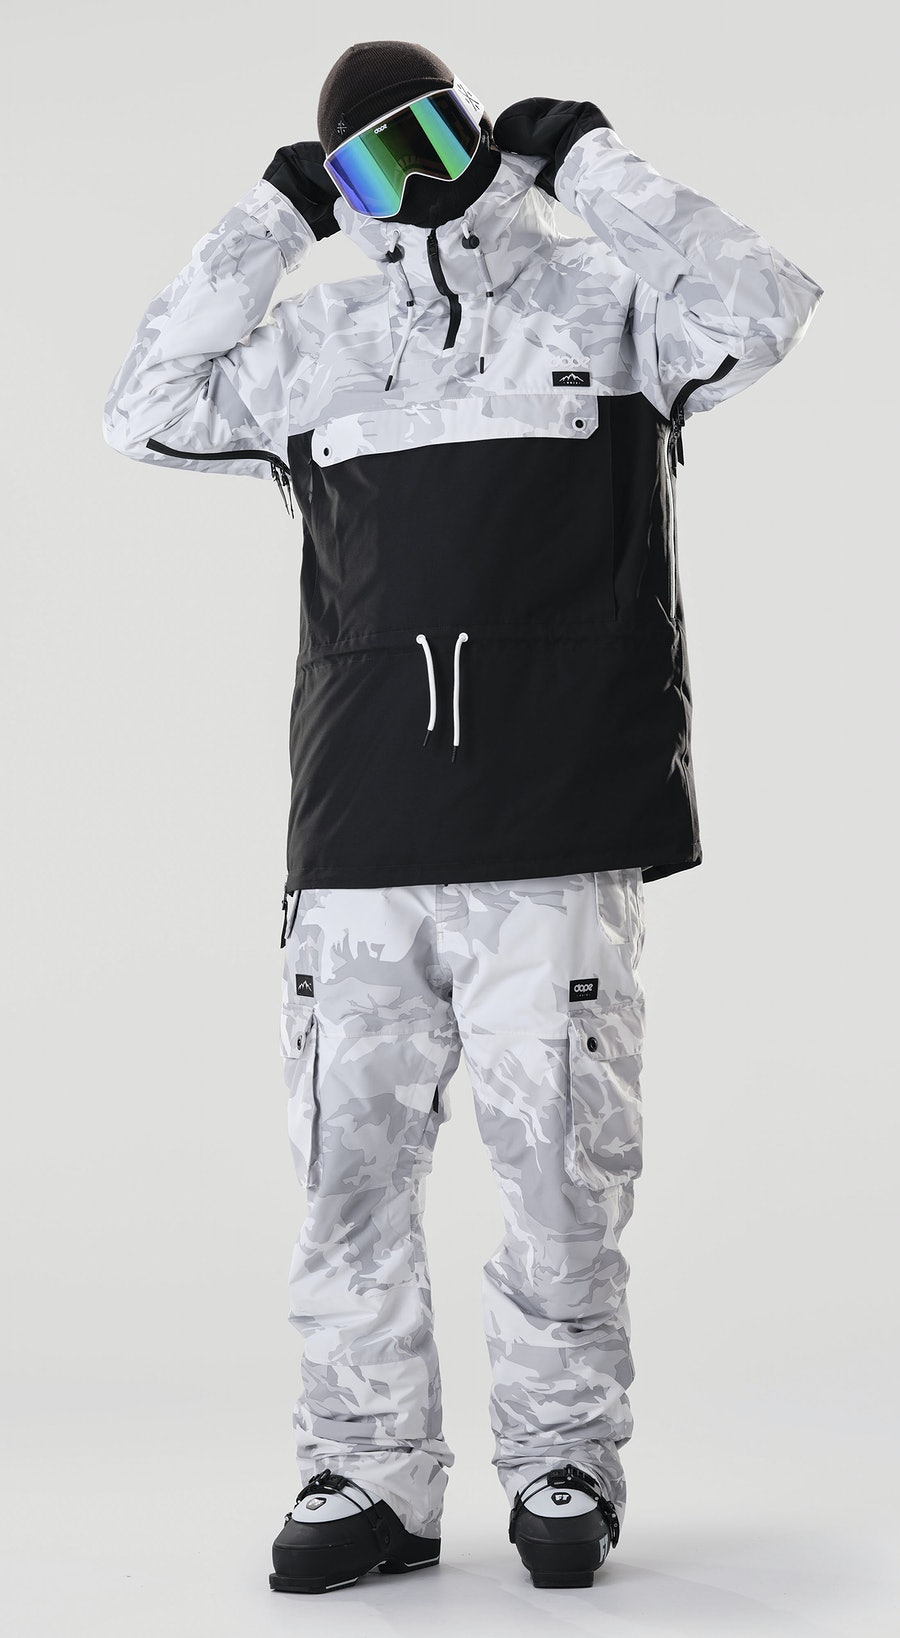 Dope Annok Tucks Camo/Black Ski Clothing Multi